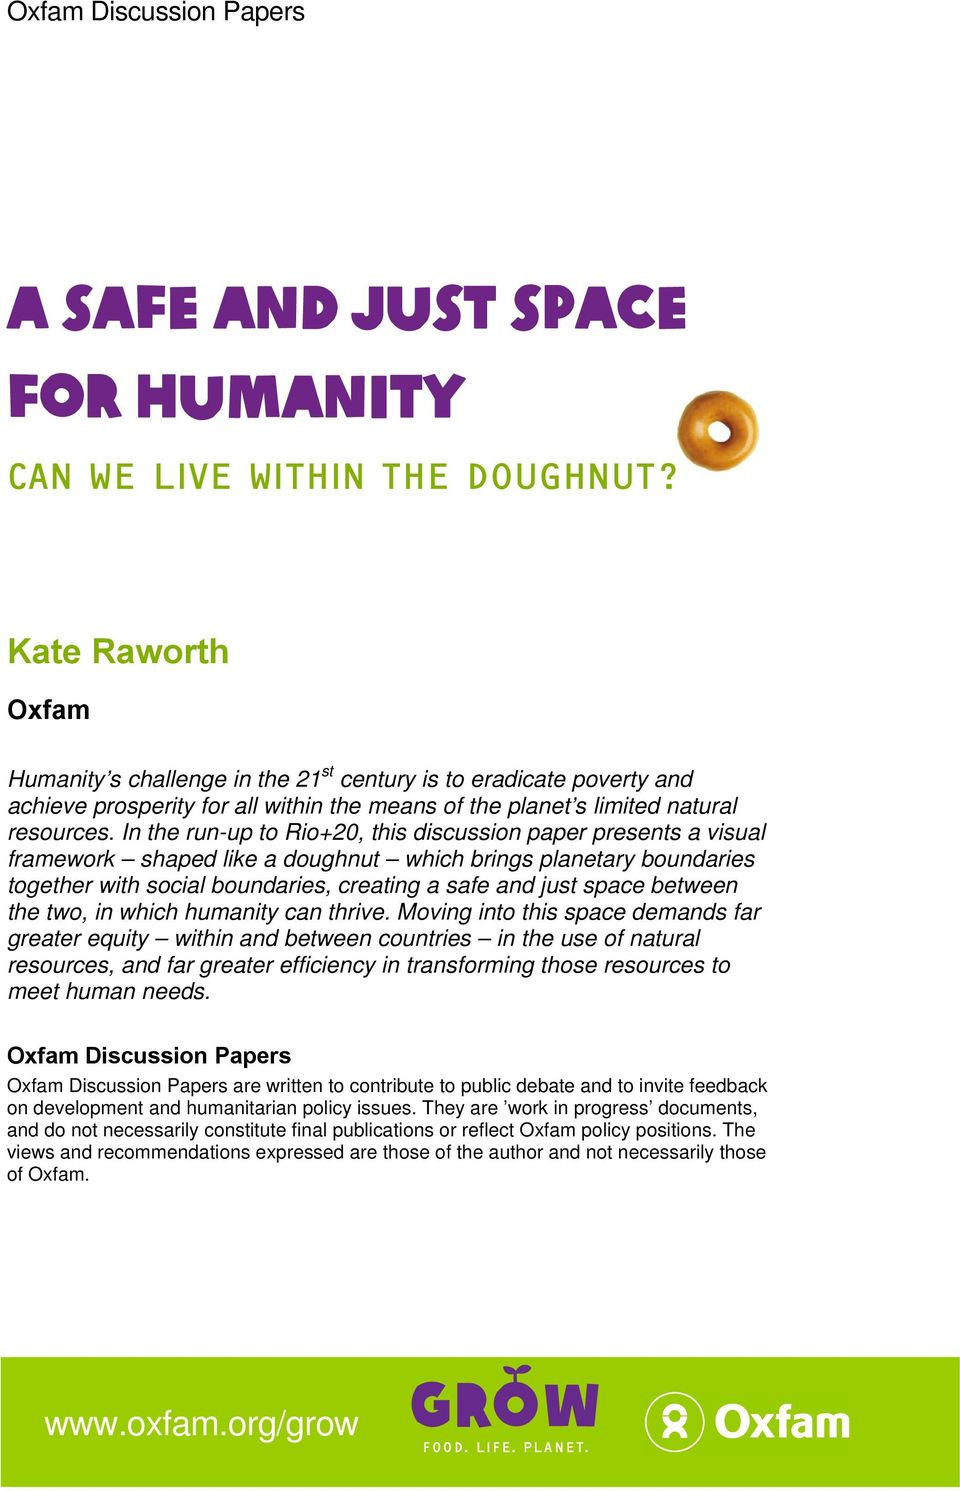 In the run-up to Rio+20, this discussion paper presents a visual framework shaped like a doughnut which brings planetary boundaries together with social boundaries, creating a safe and just space